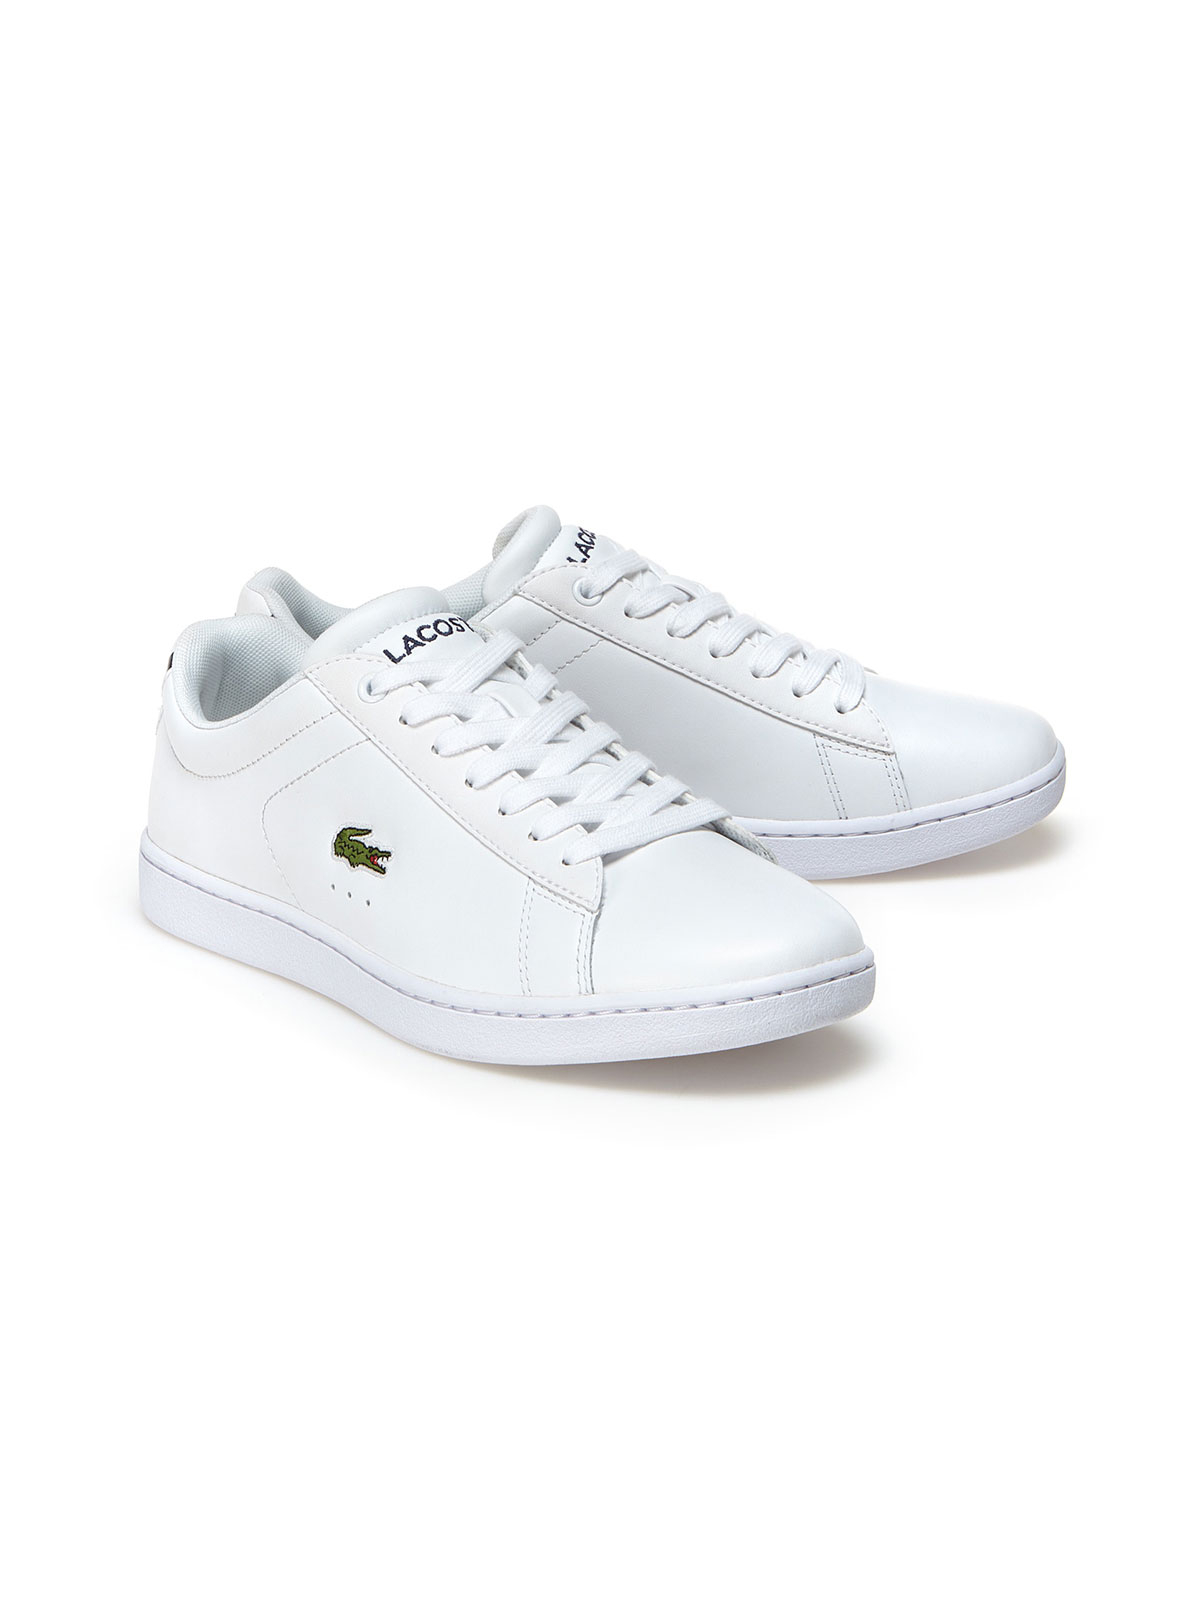 68841e6454e Lacoste Carnaby evo baseline trainers - White sneakers | CHOPIN